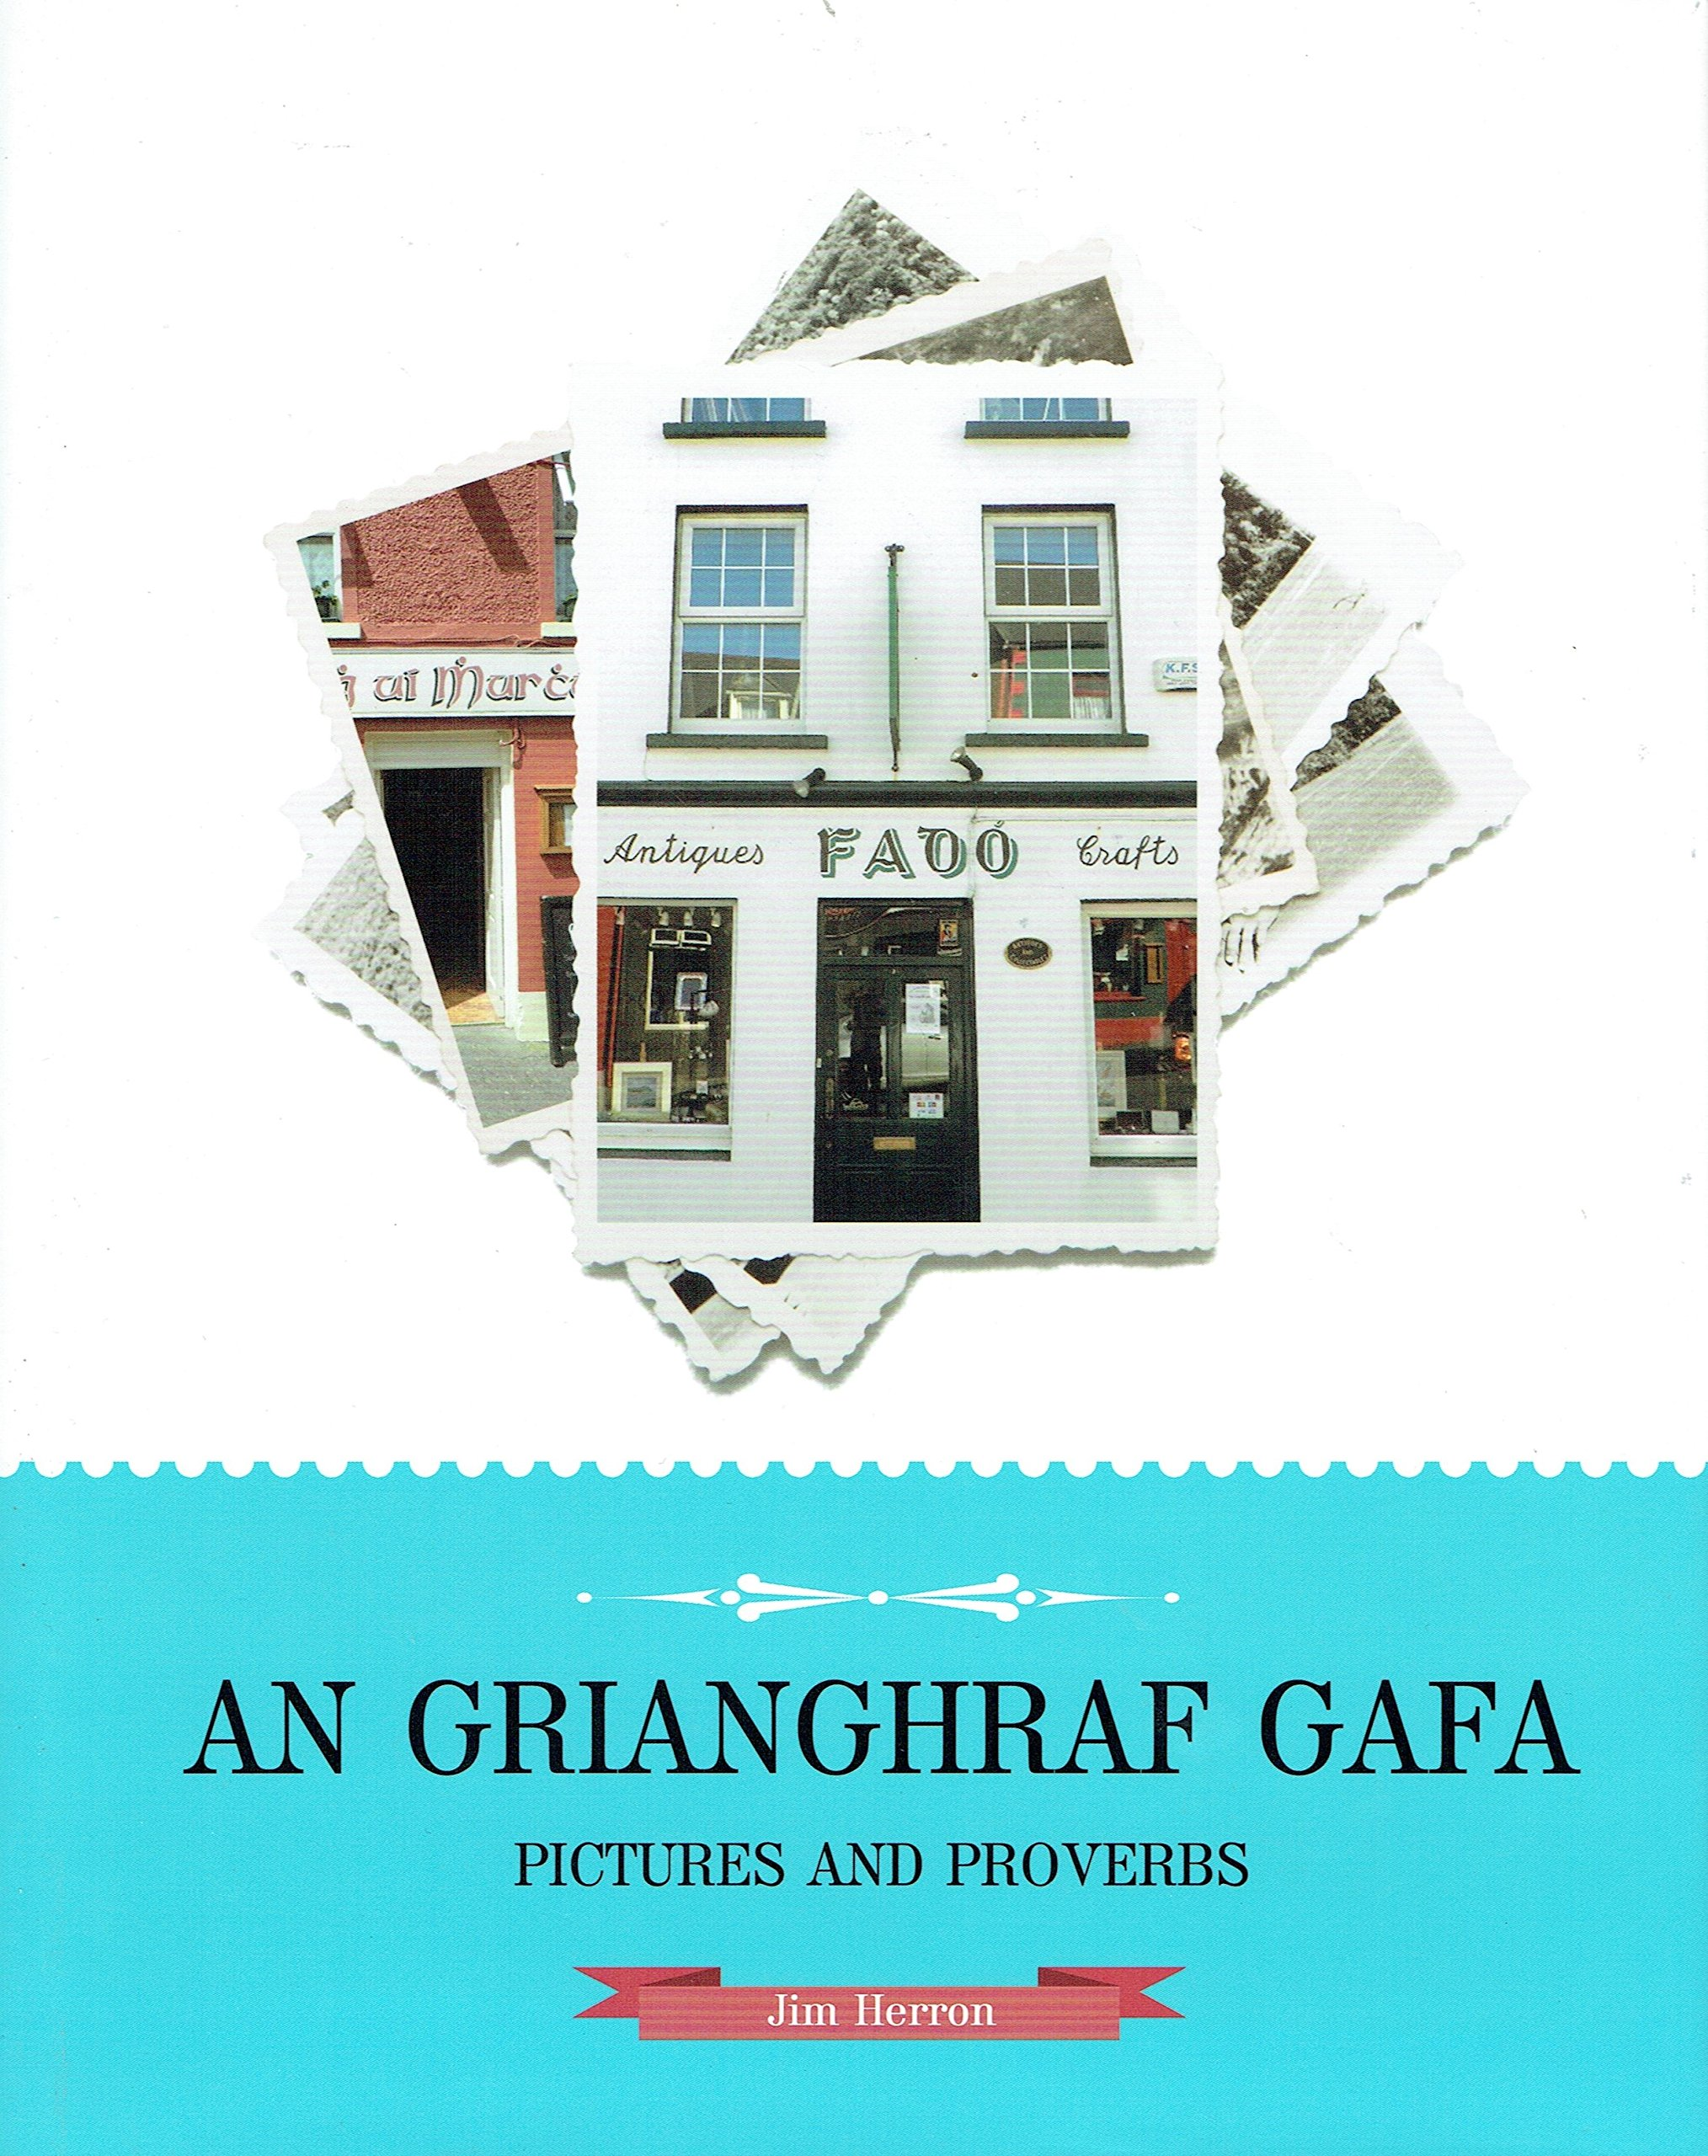 An Grianghraif Gafa - Pictures and Proverbs by Jim Herron